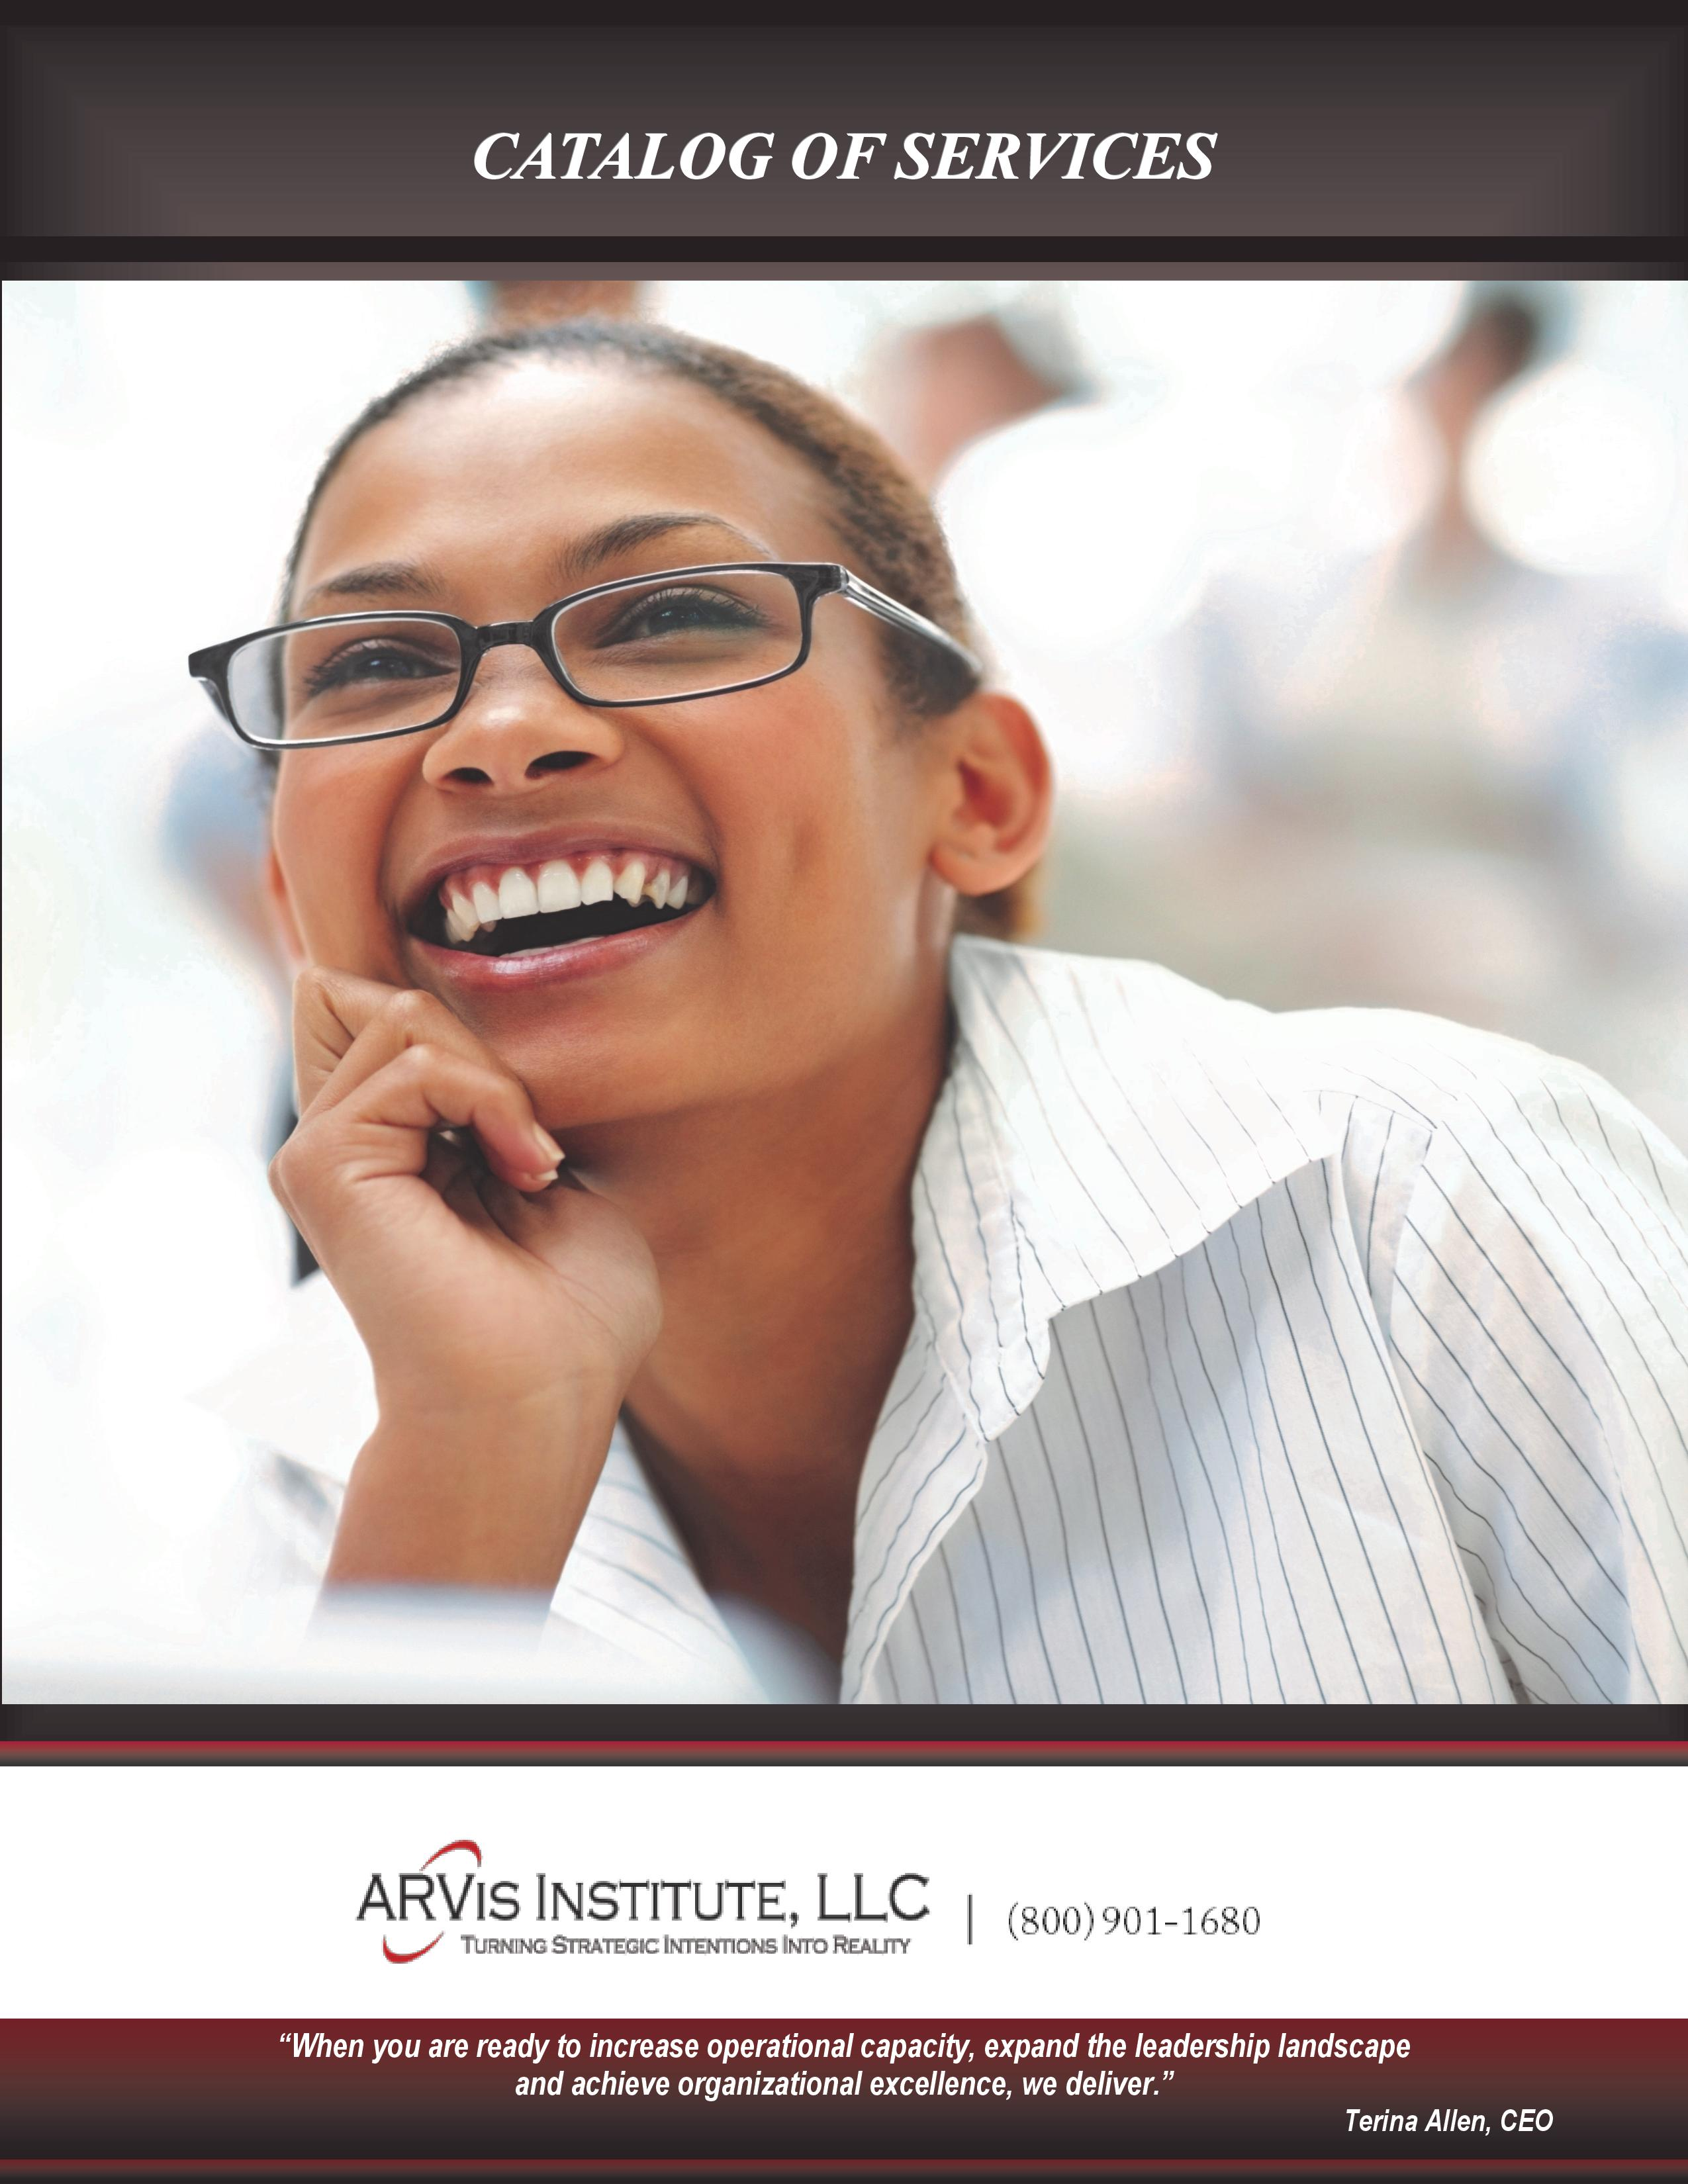 Read ARVis Institute Catalog of Services